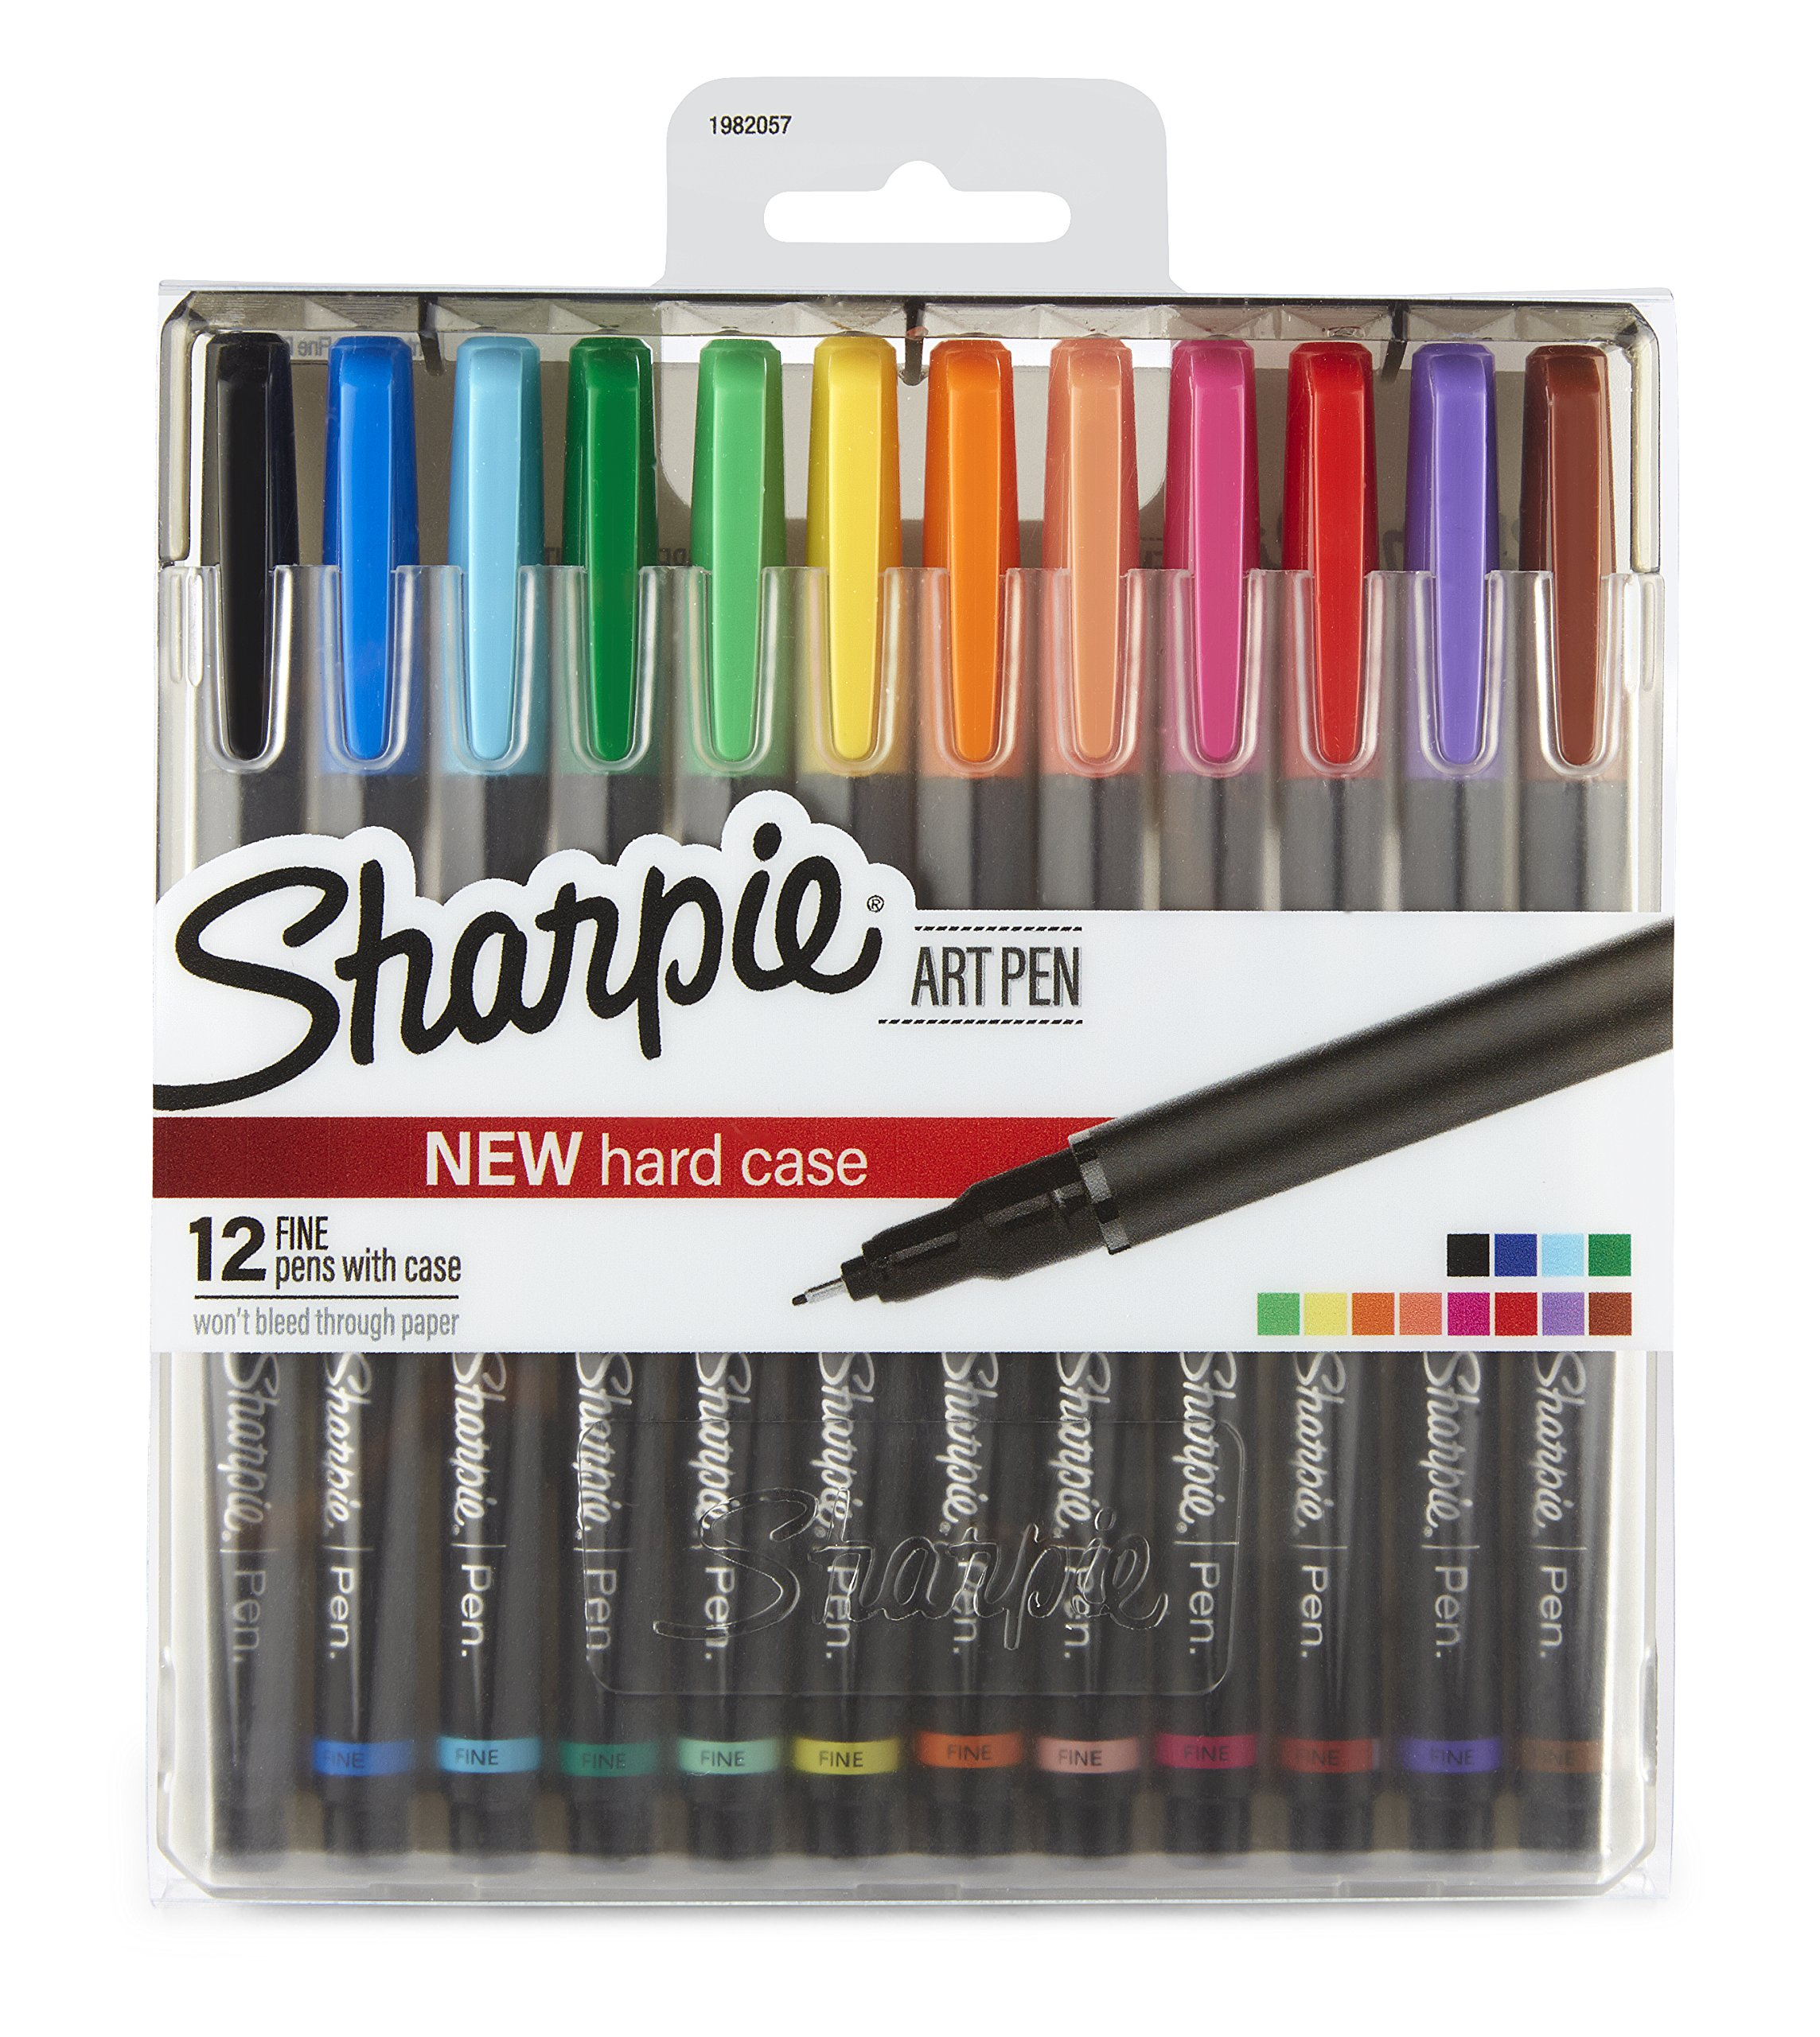 Sharpie Art Pens, Fine Point, Assorted Colors, Hard Case, 12 Pack (1982057) by Sharpie